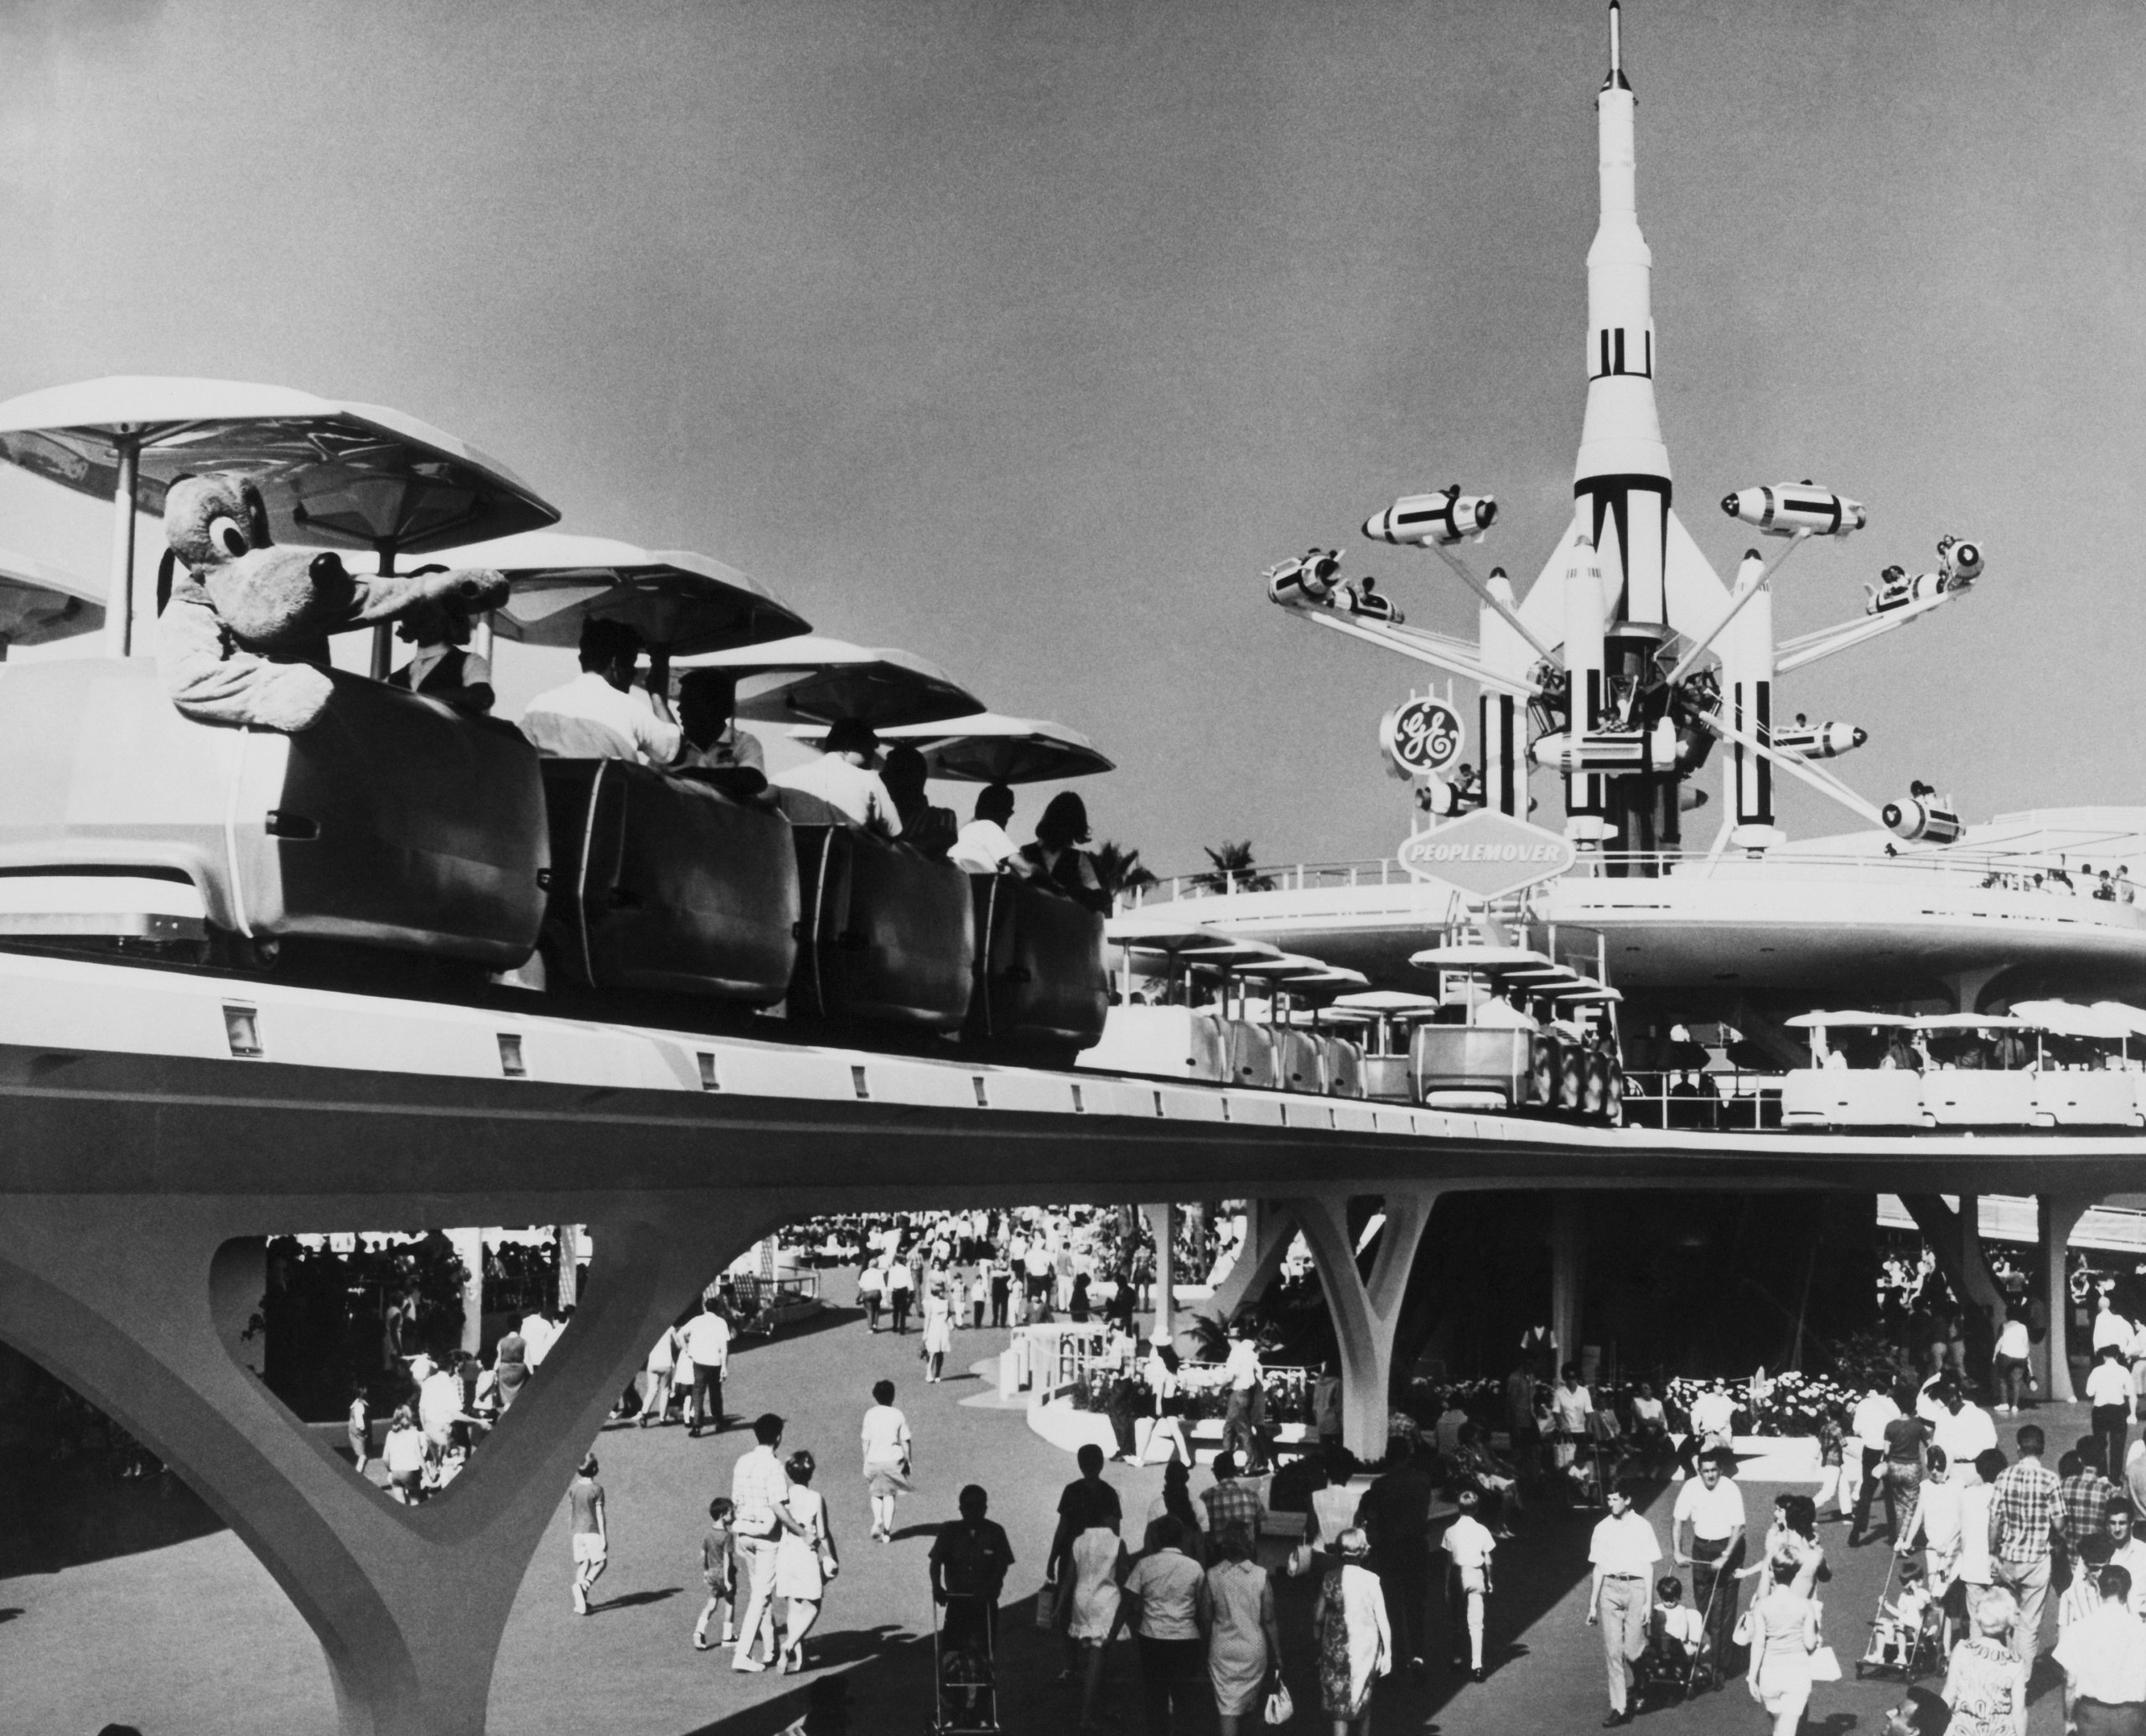 Tomorrowland, People Mover At Disneyland Park In California